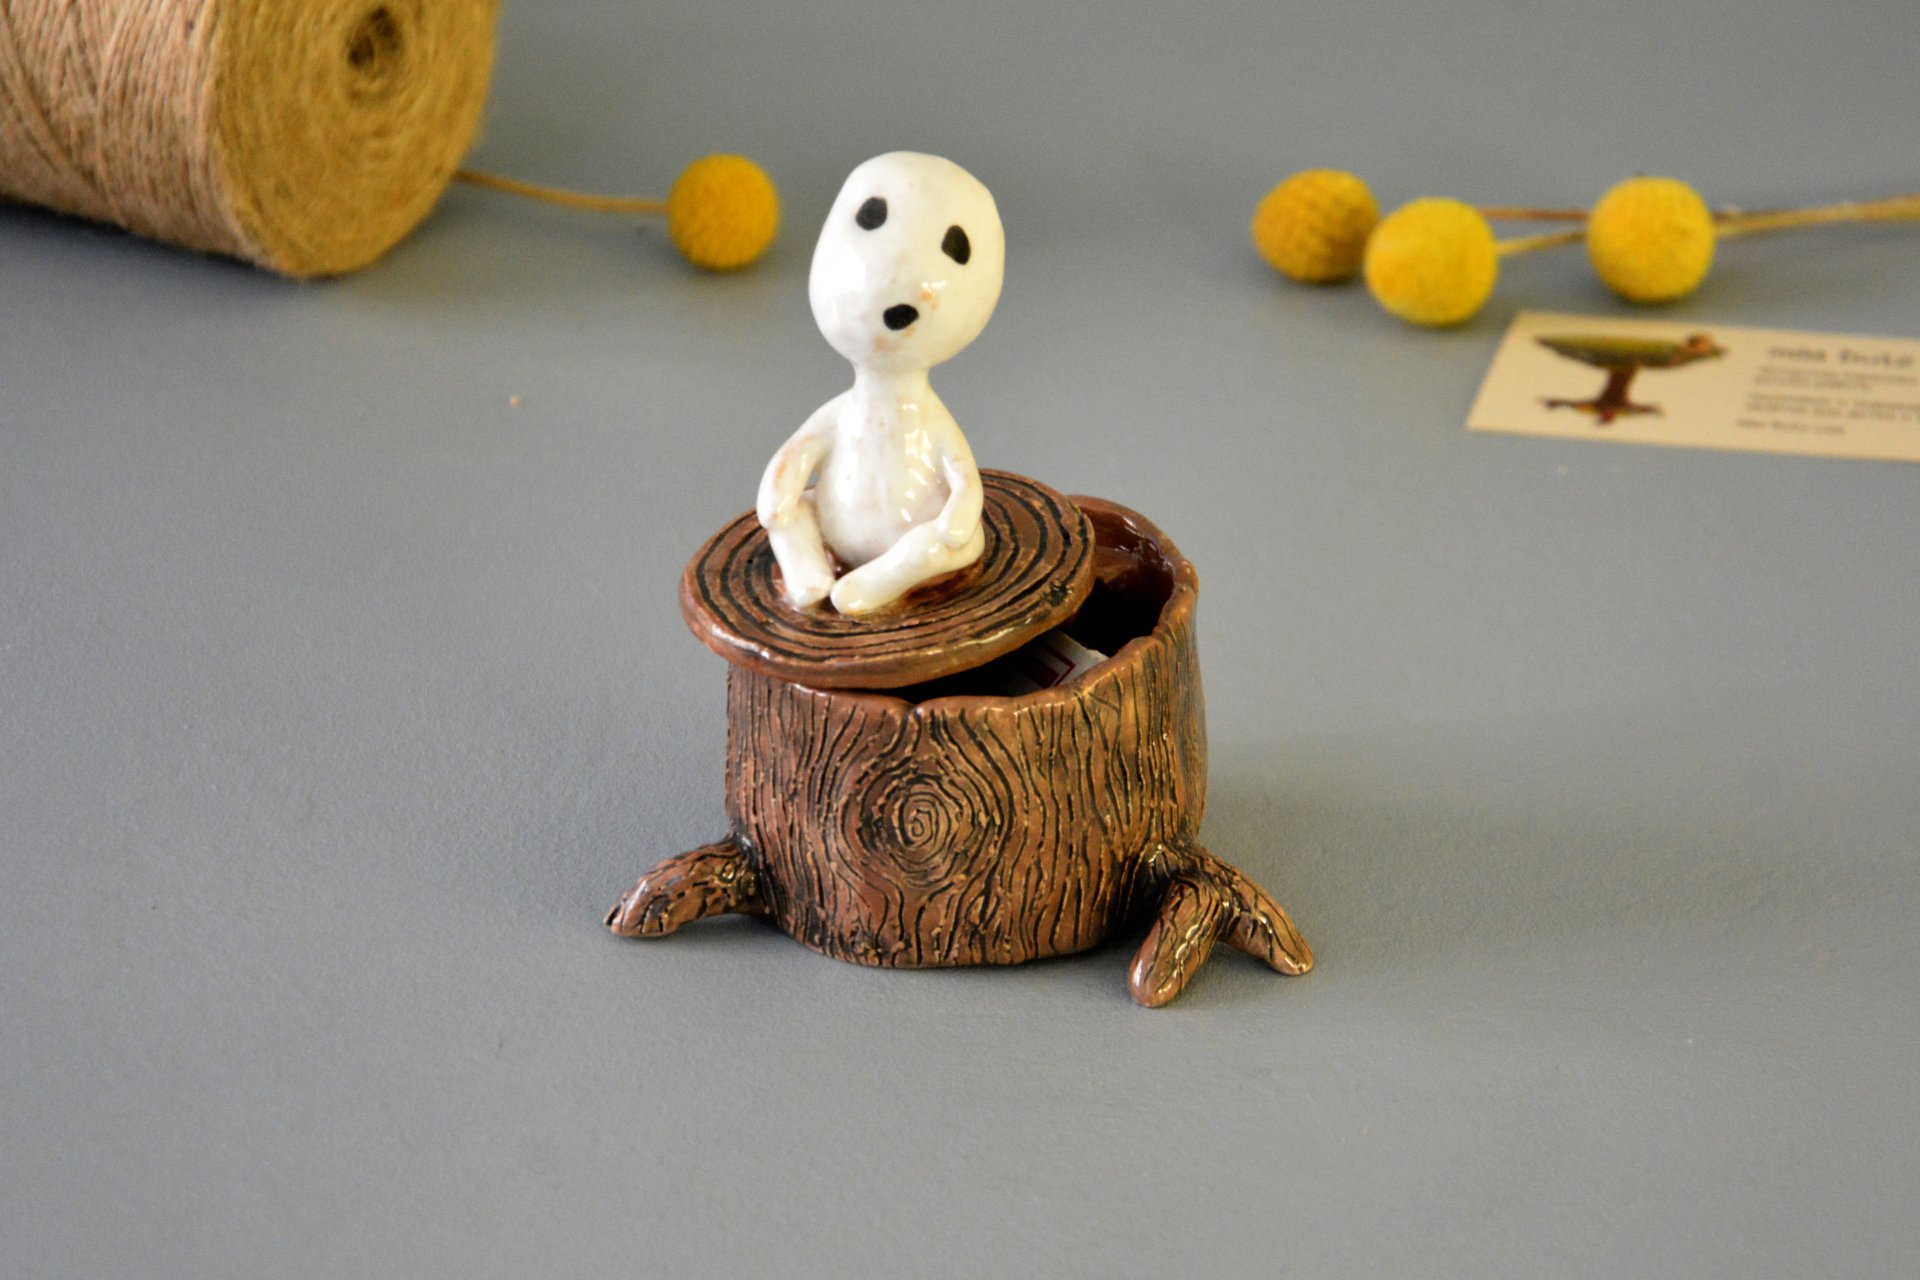 Figurine of the Kodama of tree spirit on the hemp, height - 11 cm, diameter - 6 cm, photo 3 of 4.